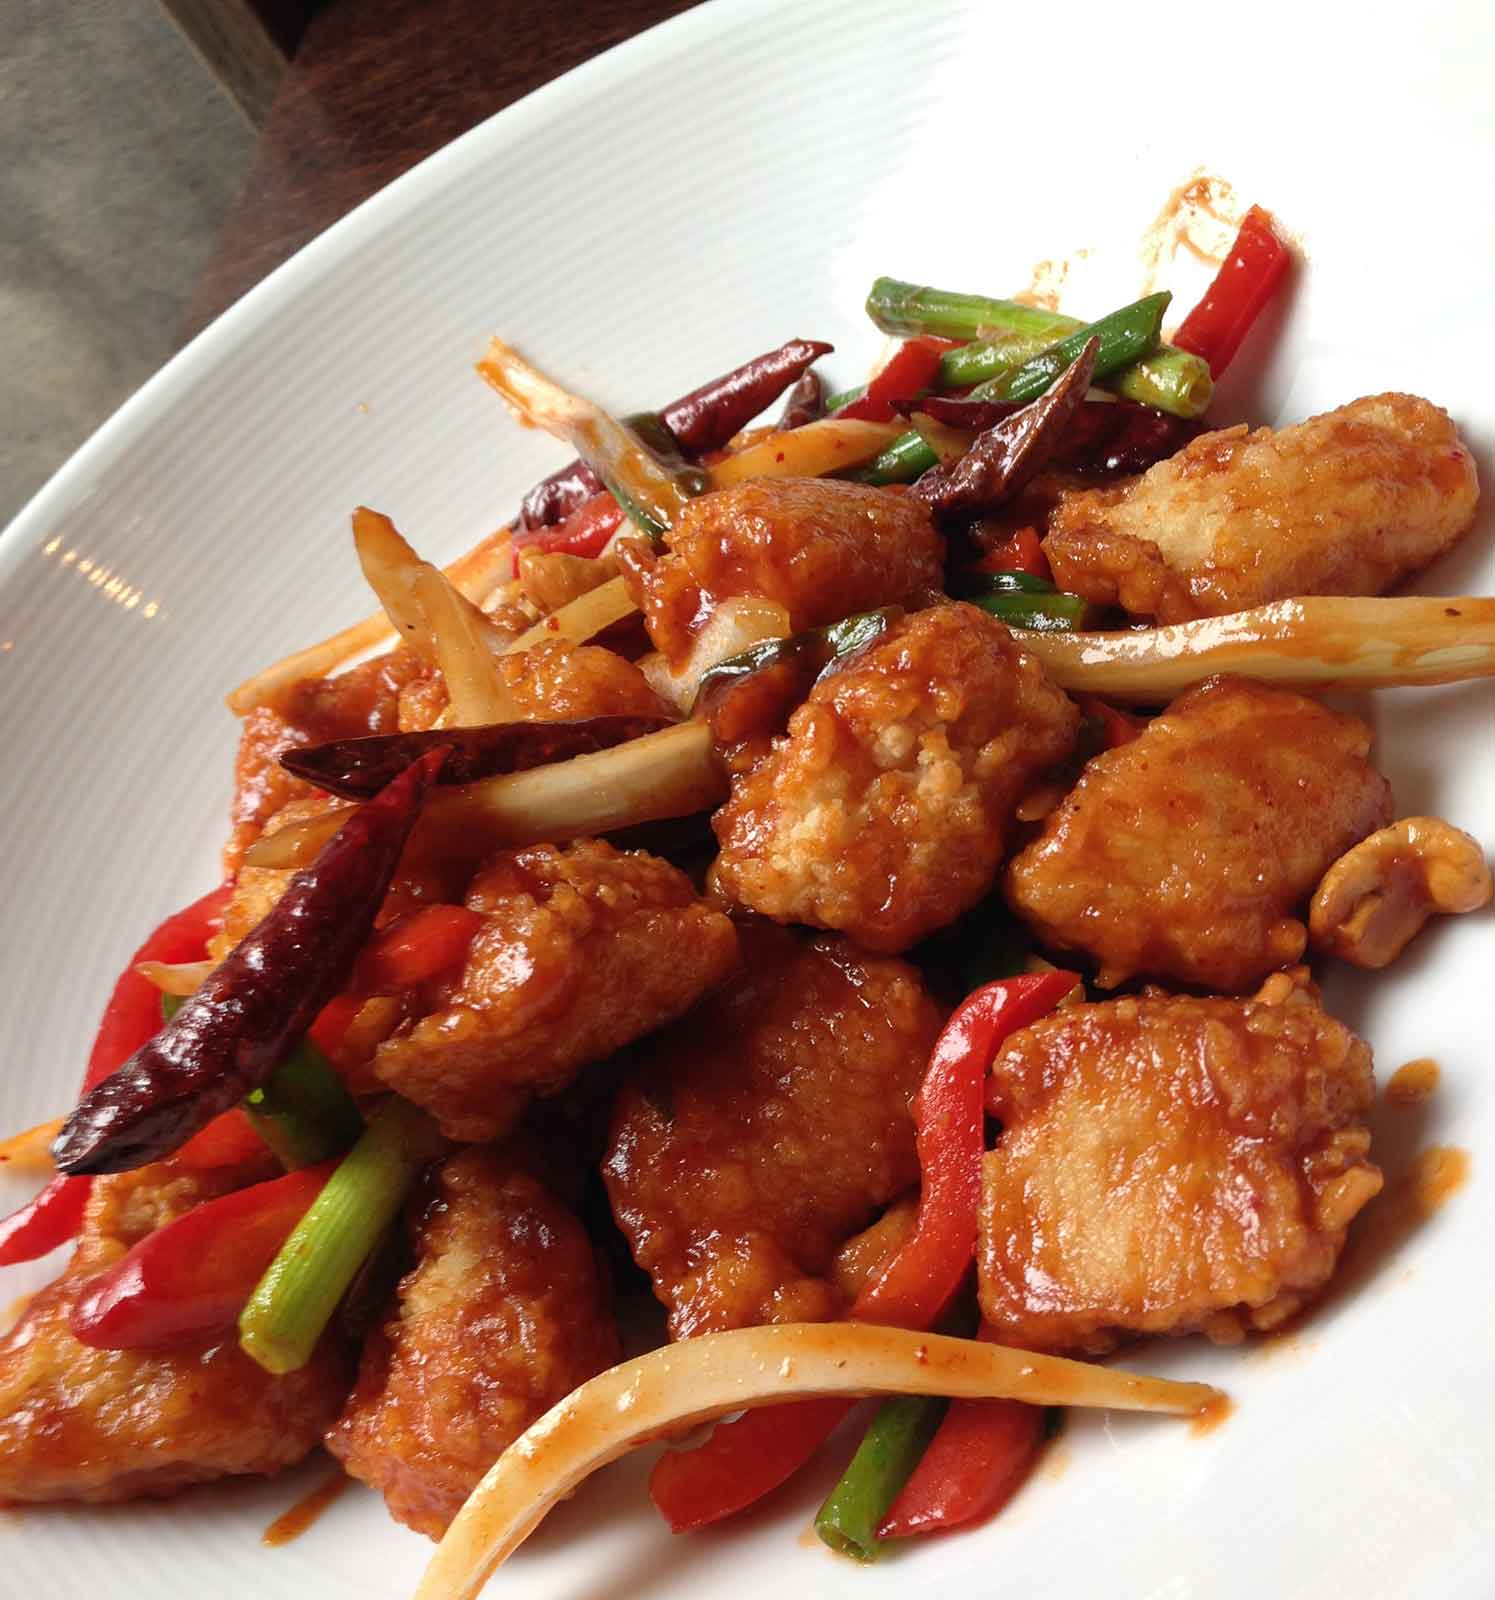 Crispy Chicken & Cashew Nuts